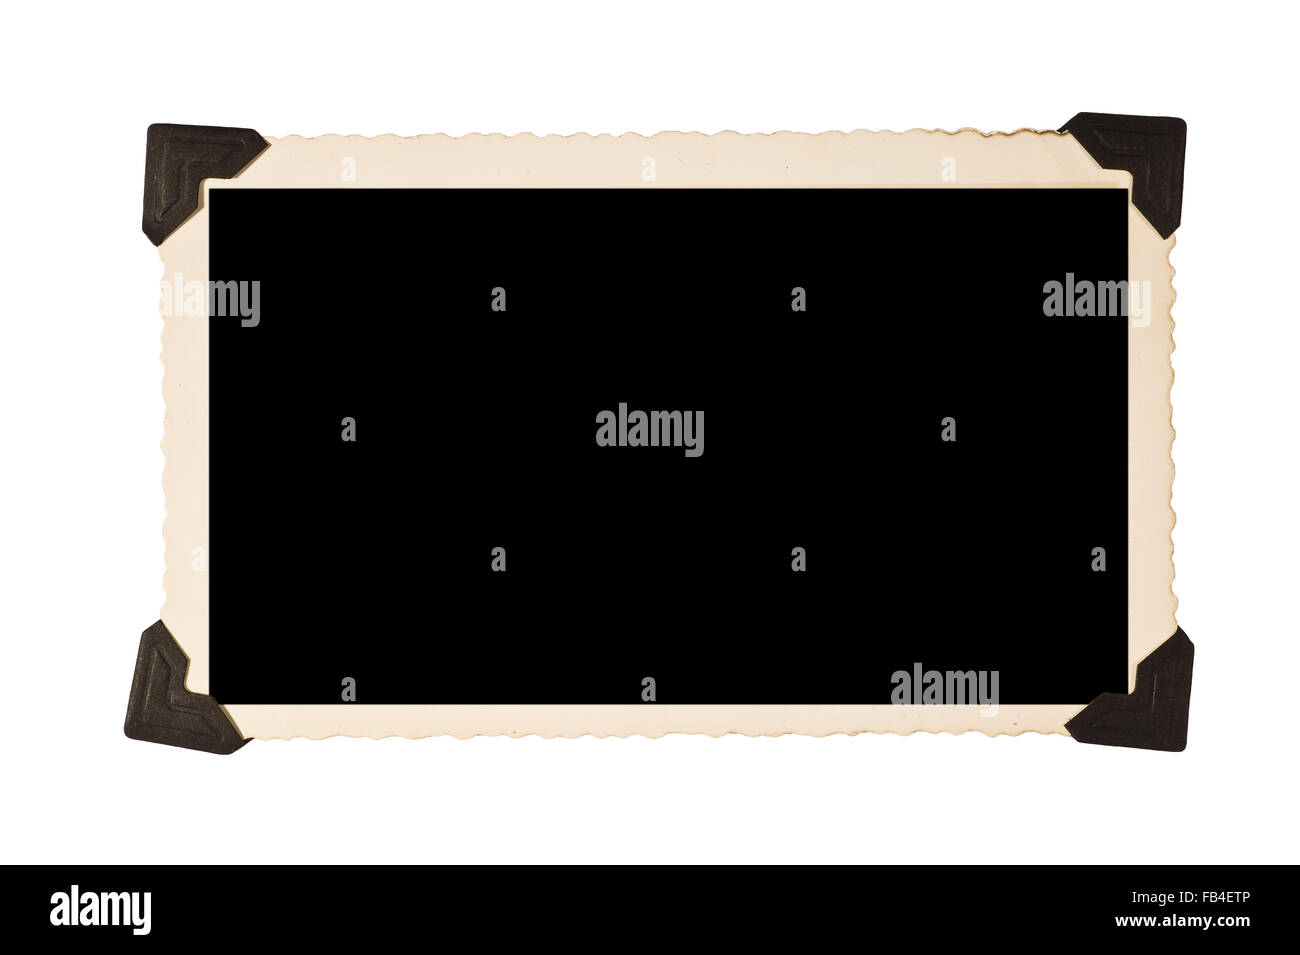 Rectangular Old Picture Frame With Photo Corners - Stock Image